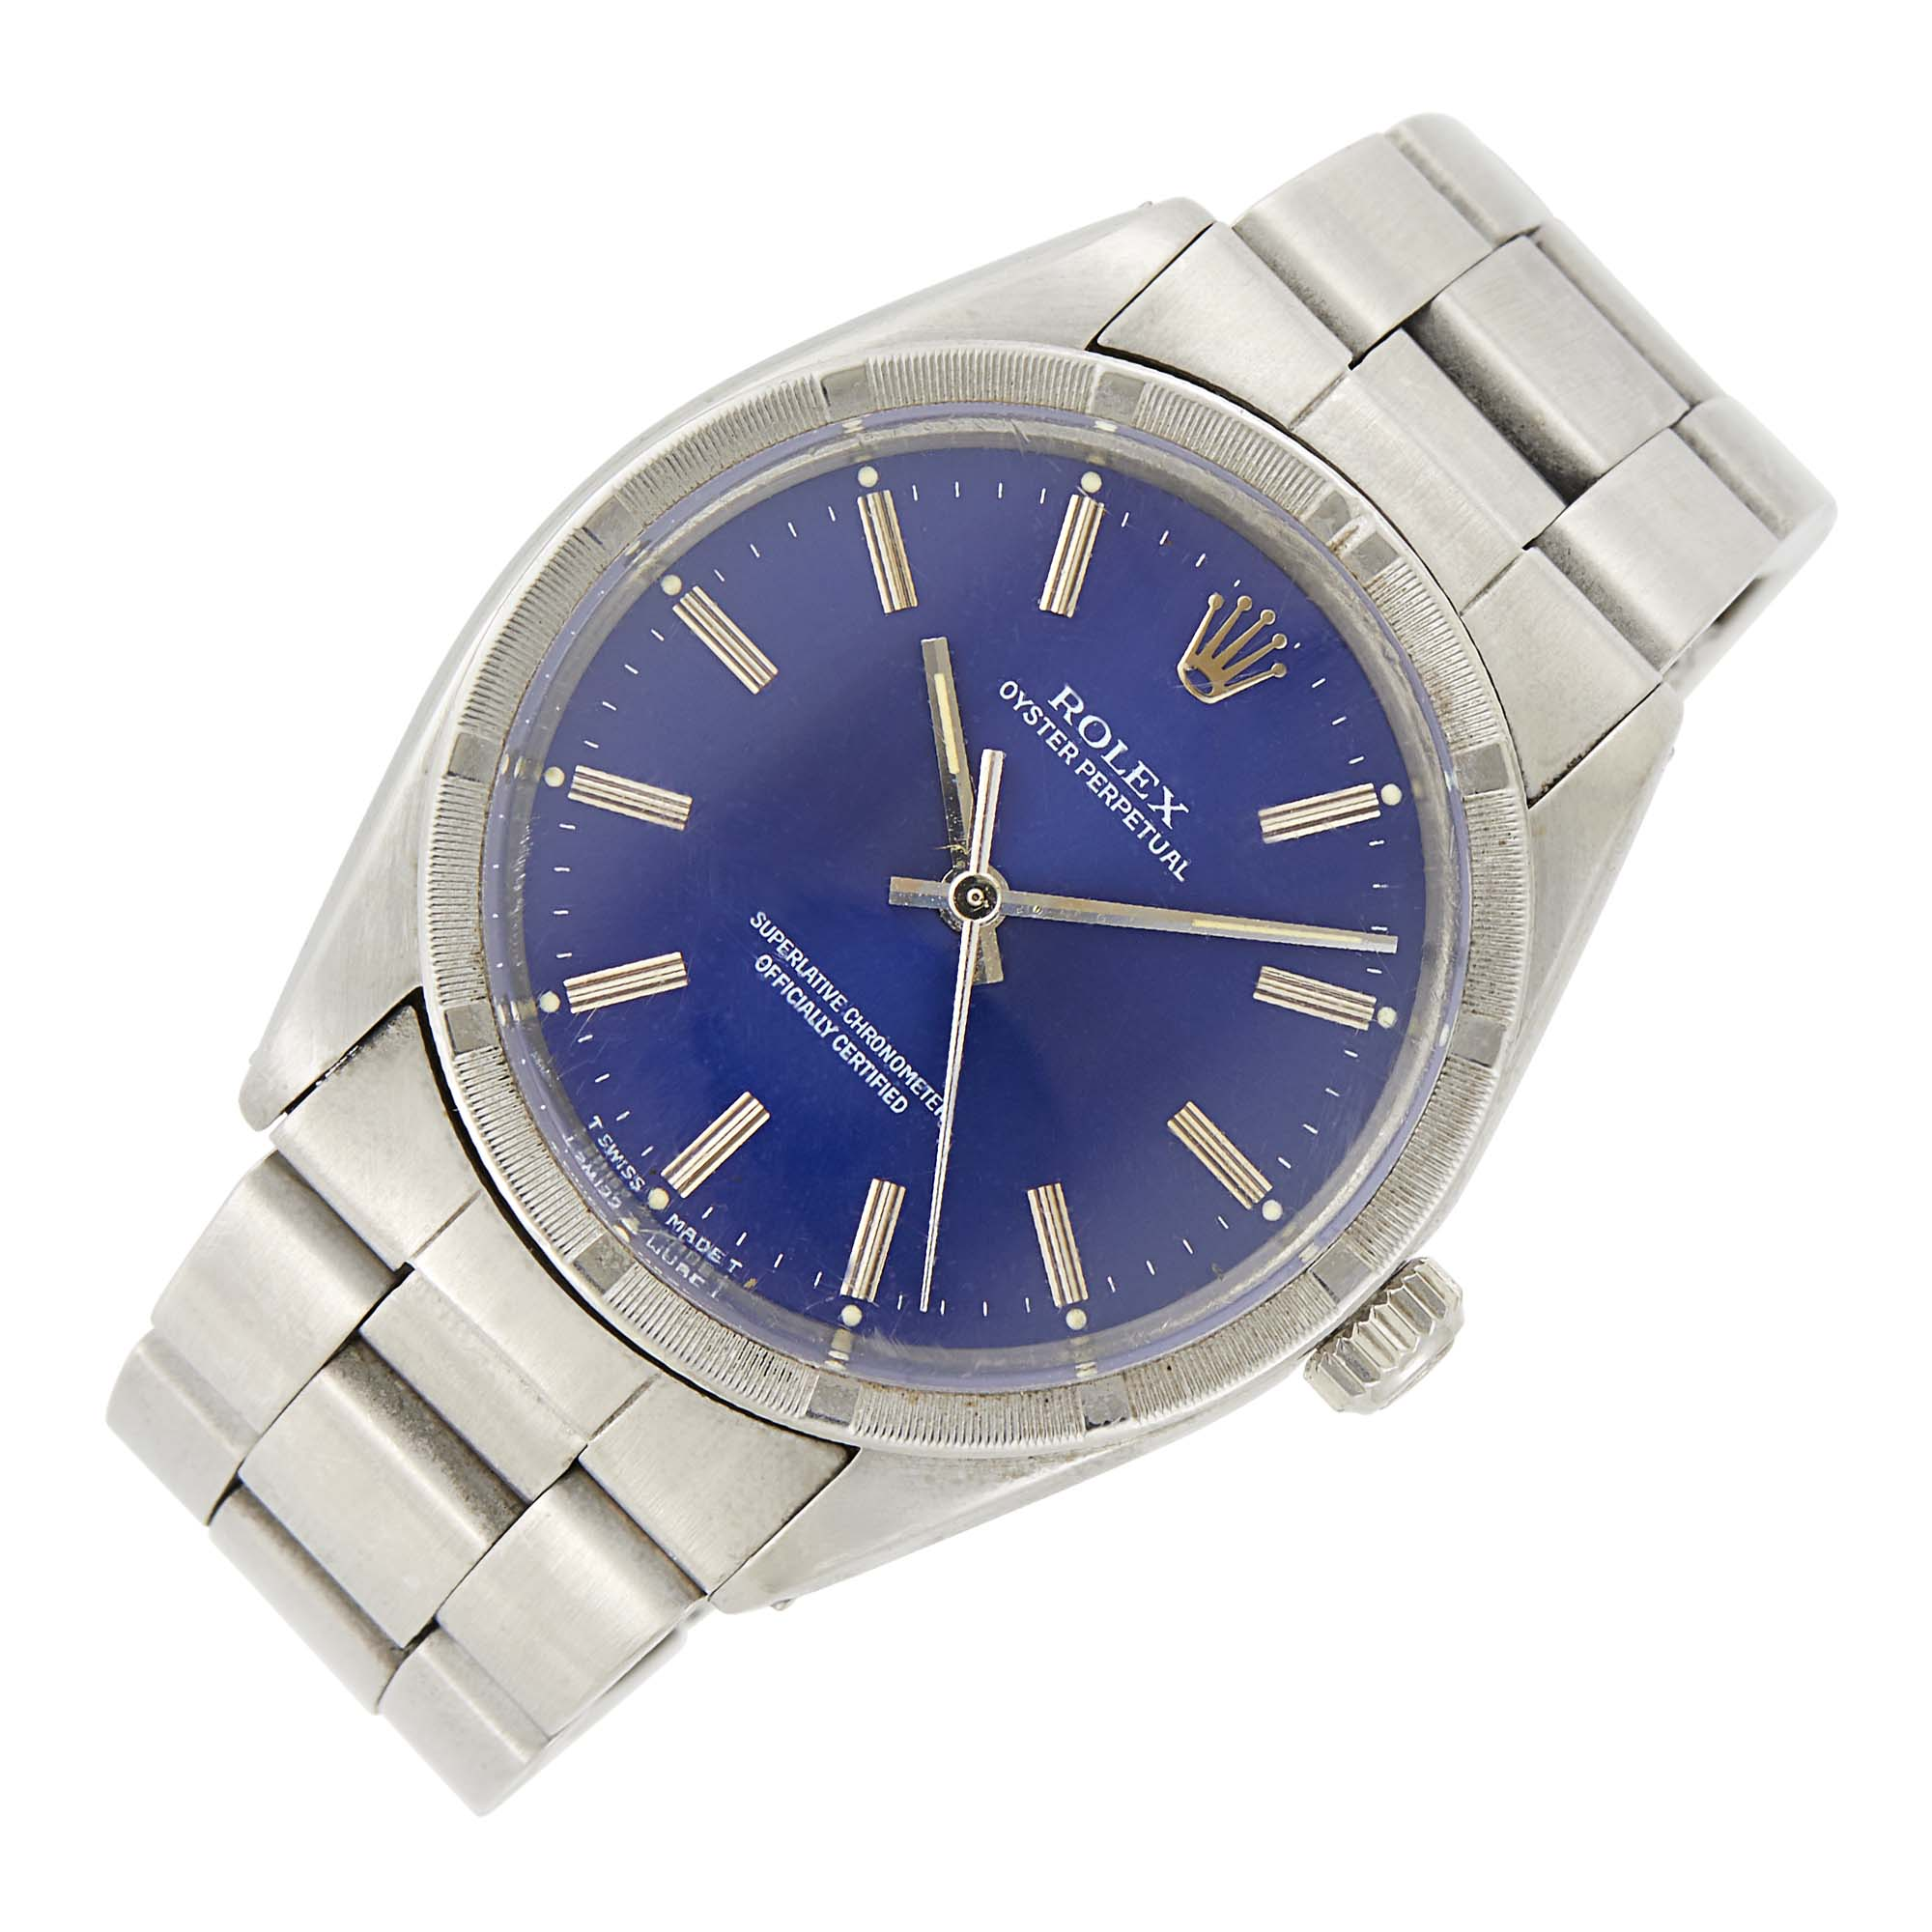 Lot image - Rolex Gentlemans Stainless Steel Oyster Perpetual Wristwatch, Ref. 1007